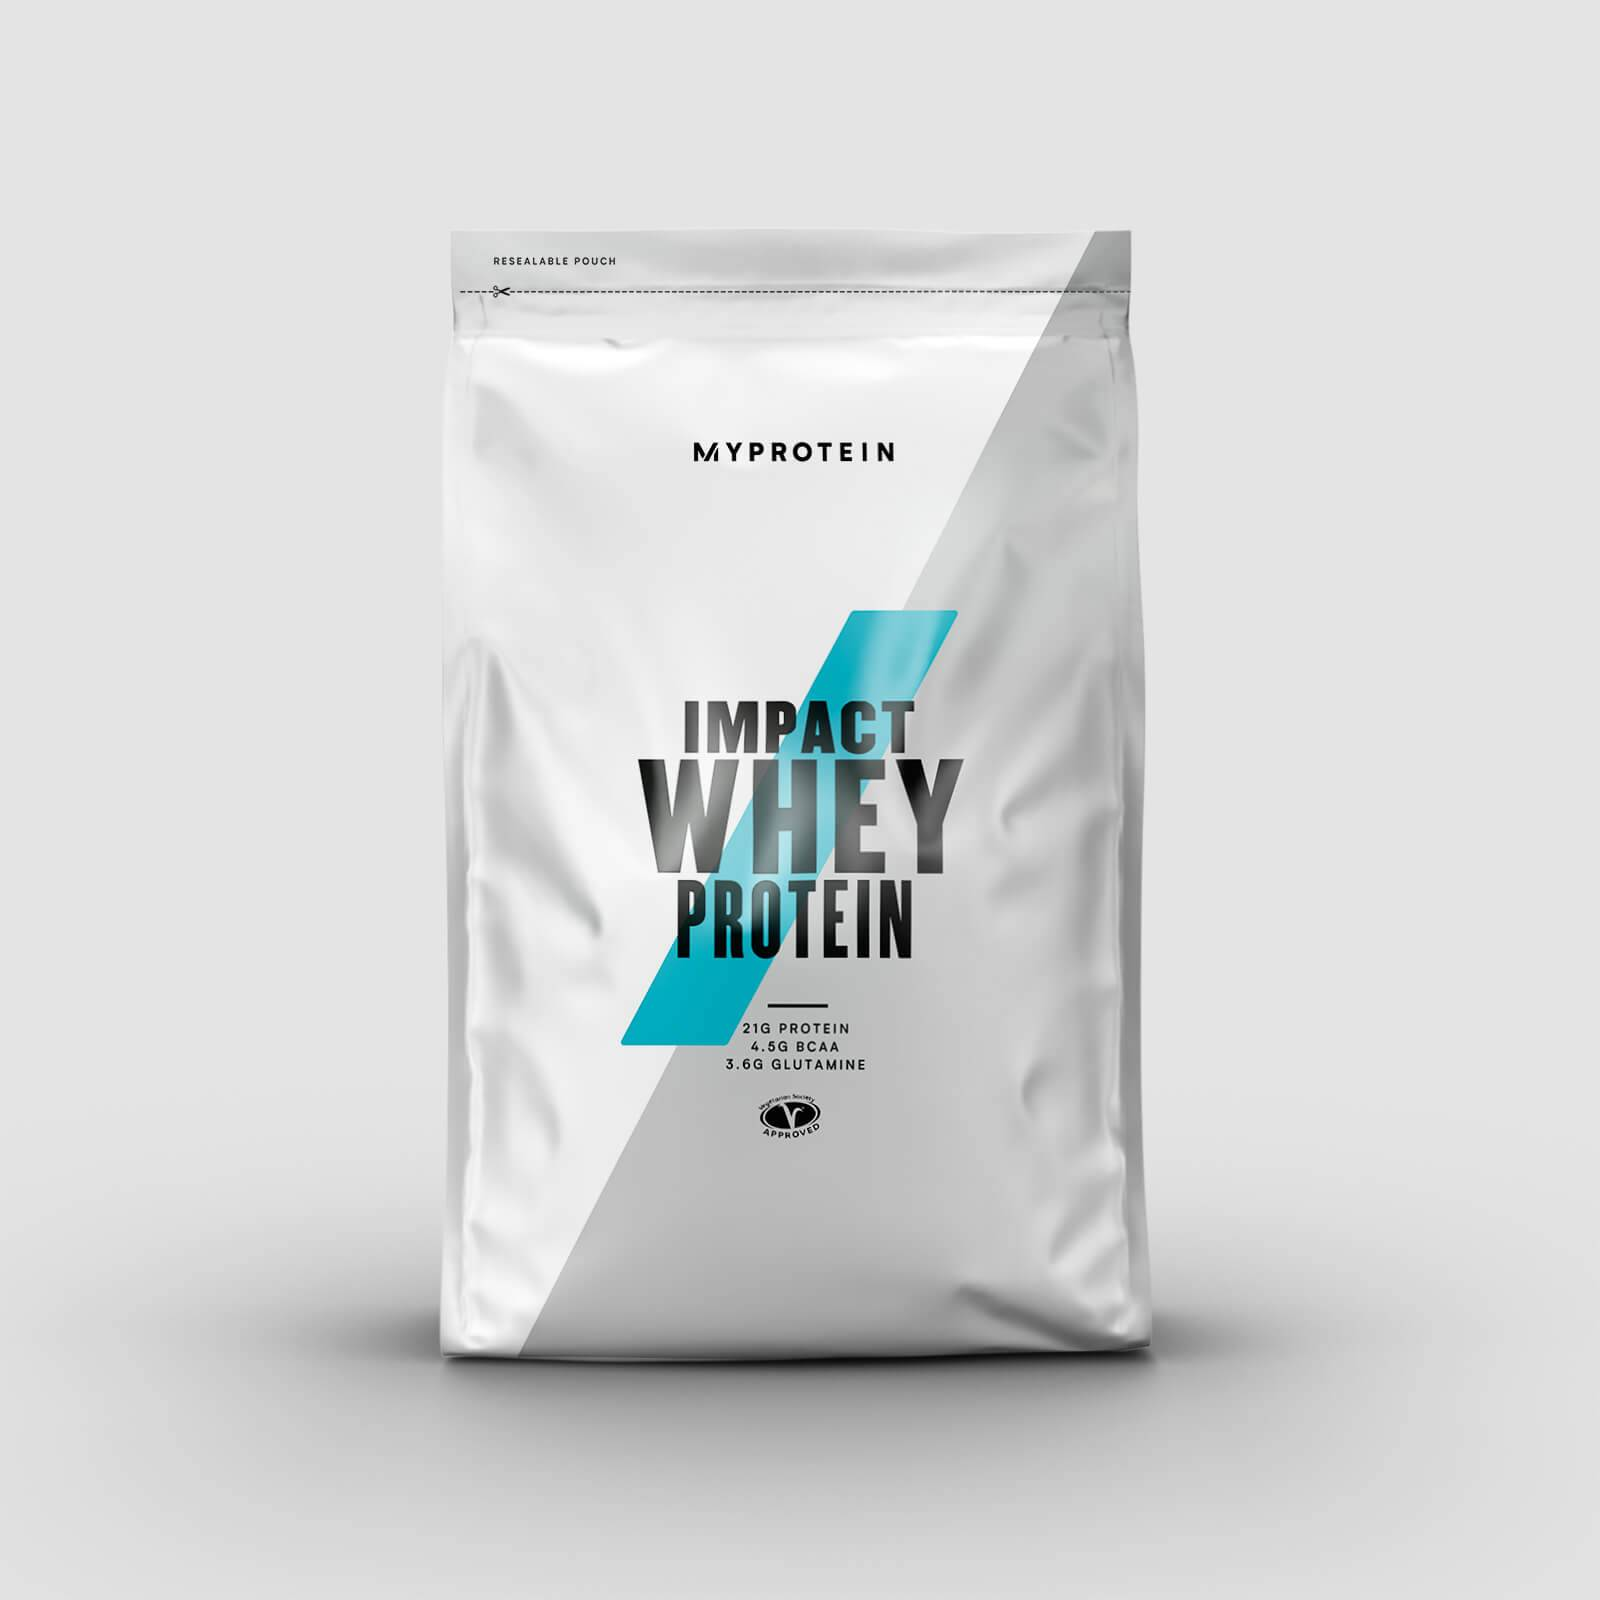 Myprotein Impact Whey Protein - 5kg - Raspberry - New and Improved